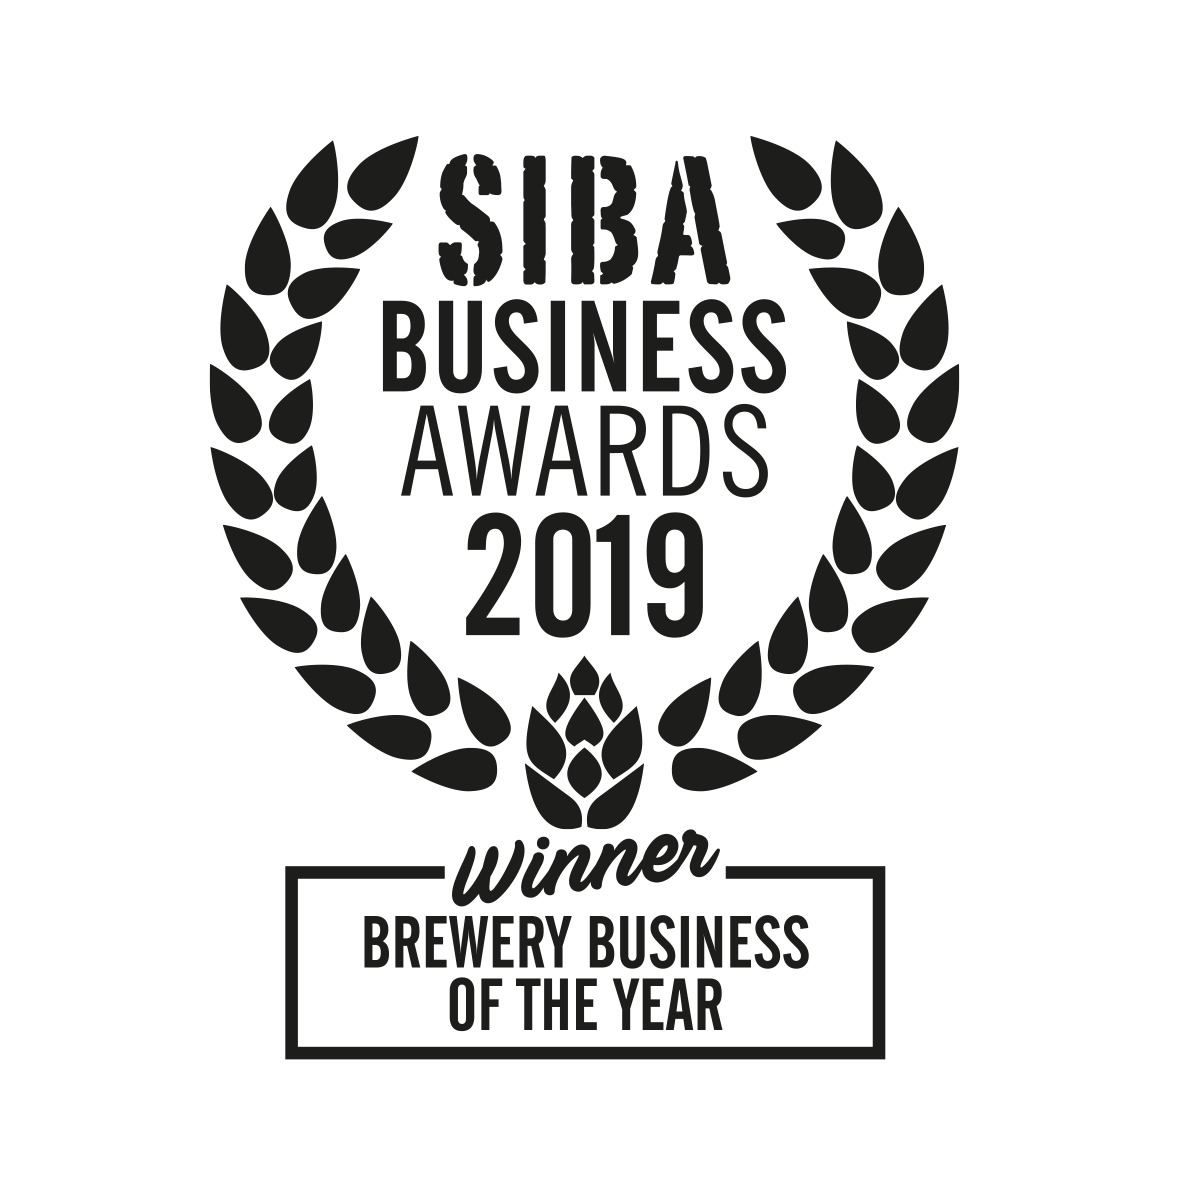 Business Awards winners 2019_Brewery Business of The Year.png